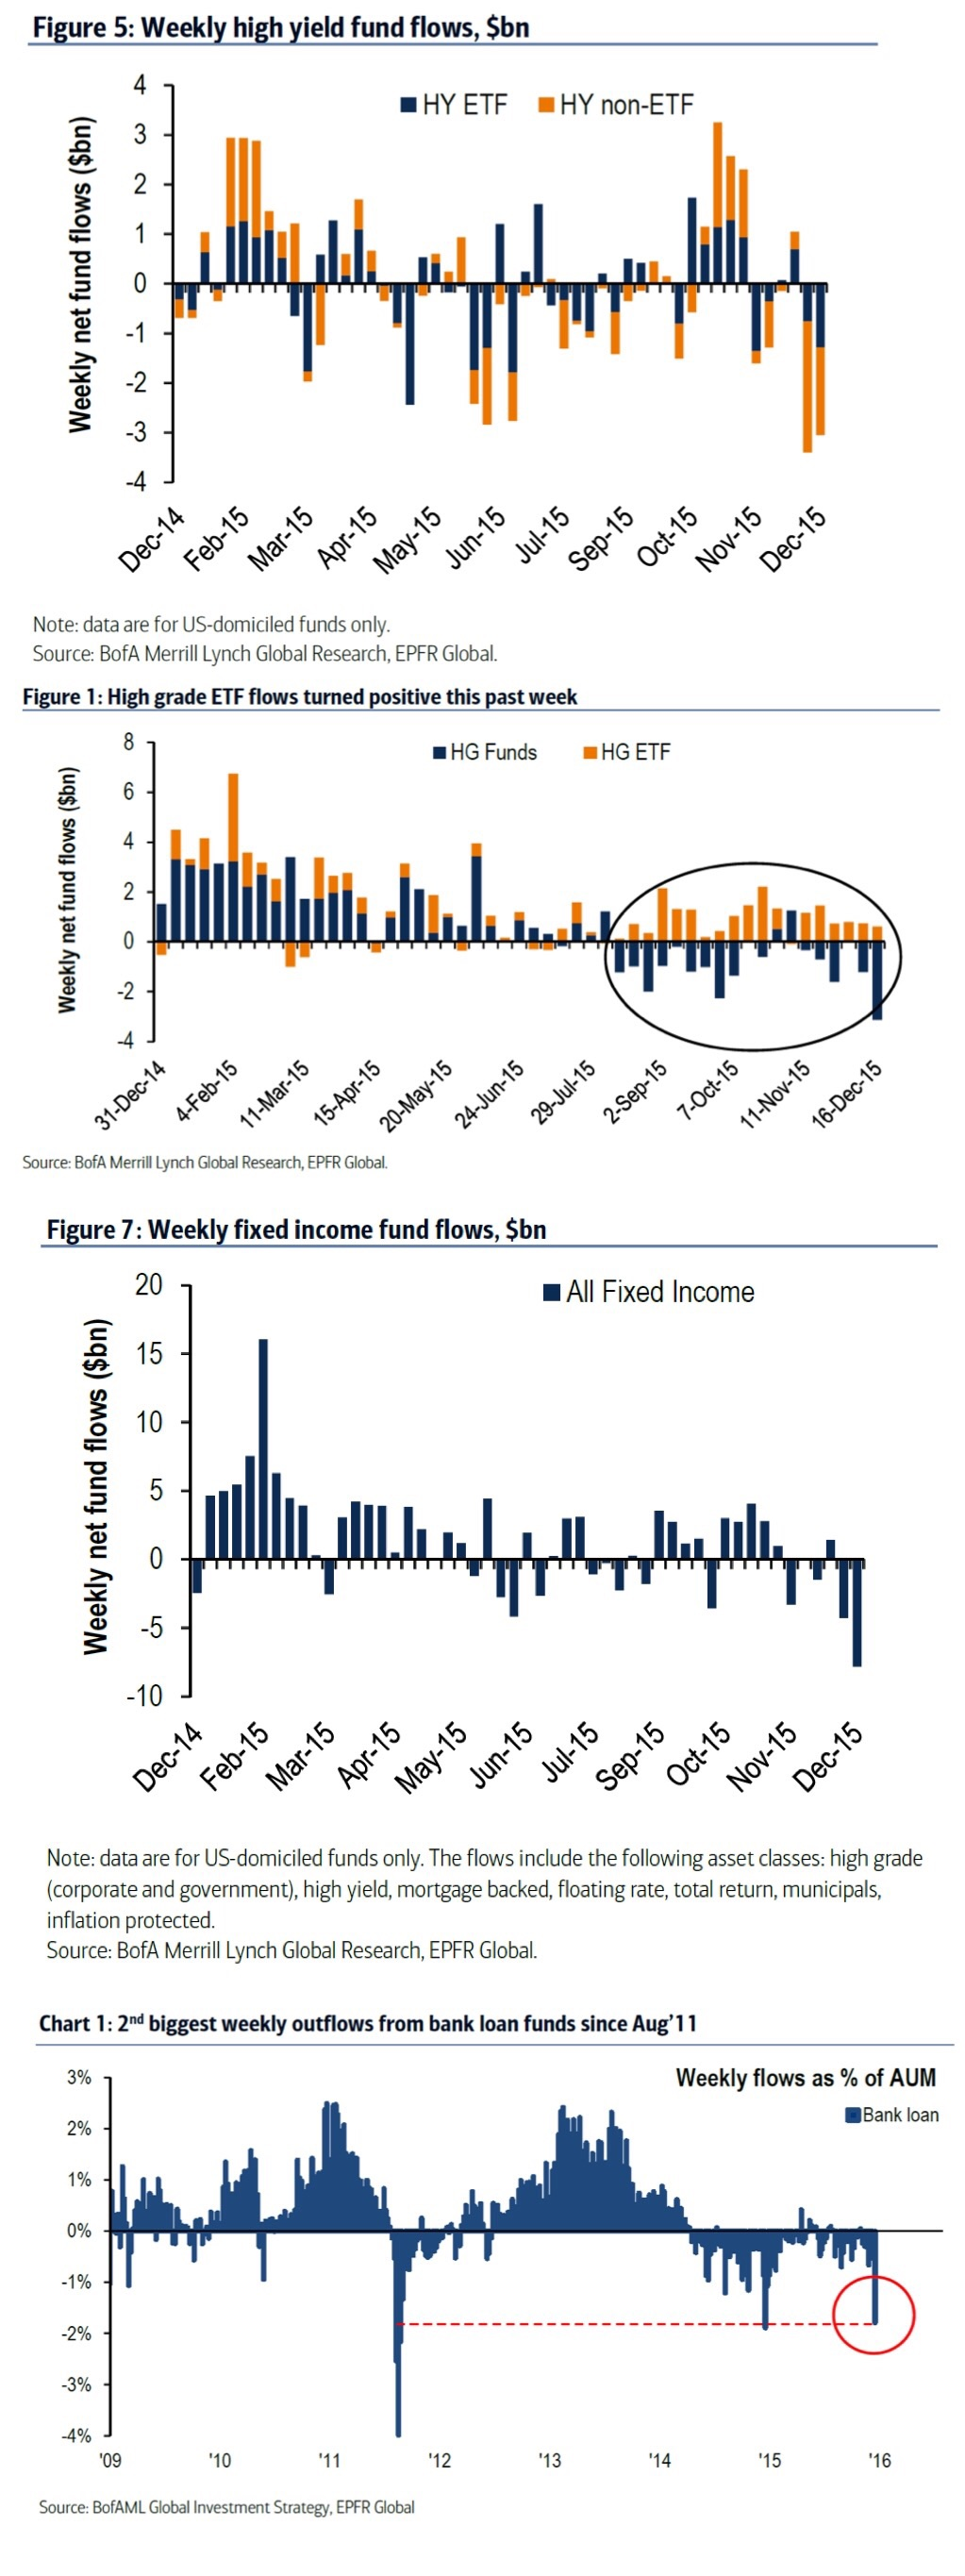 One word: Liquidations. An exodus of capital from debt across the board.  For the second consecutive week, high yield funds saw massive outflows the size of which eclipsed that seen during the August crash.  Even high grade (IG) funds saw the largest single weekly outflow in more than 15 months, also eclipsing that seen during the August crash.  Fixed income funds as a whole experienced a nearly $10bn outflow last week, the largest in more than 2 years!  Levered bank loans saw their second largest weekly outflow since August 2011!  Money has been rushing out from all kinds of debt funds and into cash at a furious pace. Do bond investors and traders believe the Fed has made a major P olicy error? The answer is pretty obvious.   Charts courtesy of BofAML